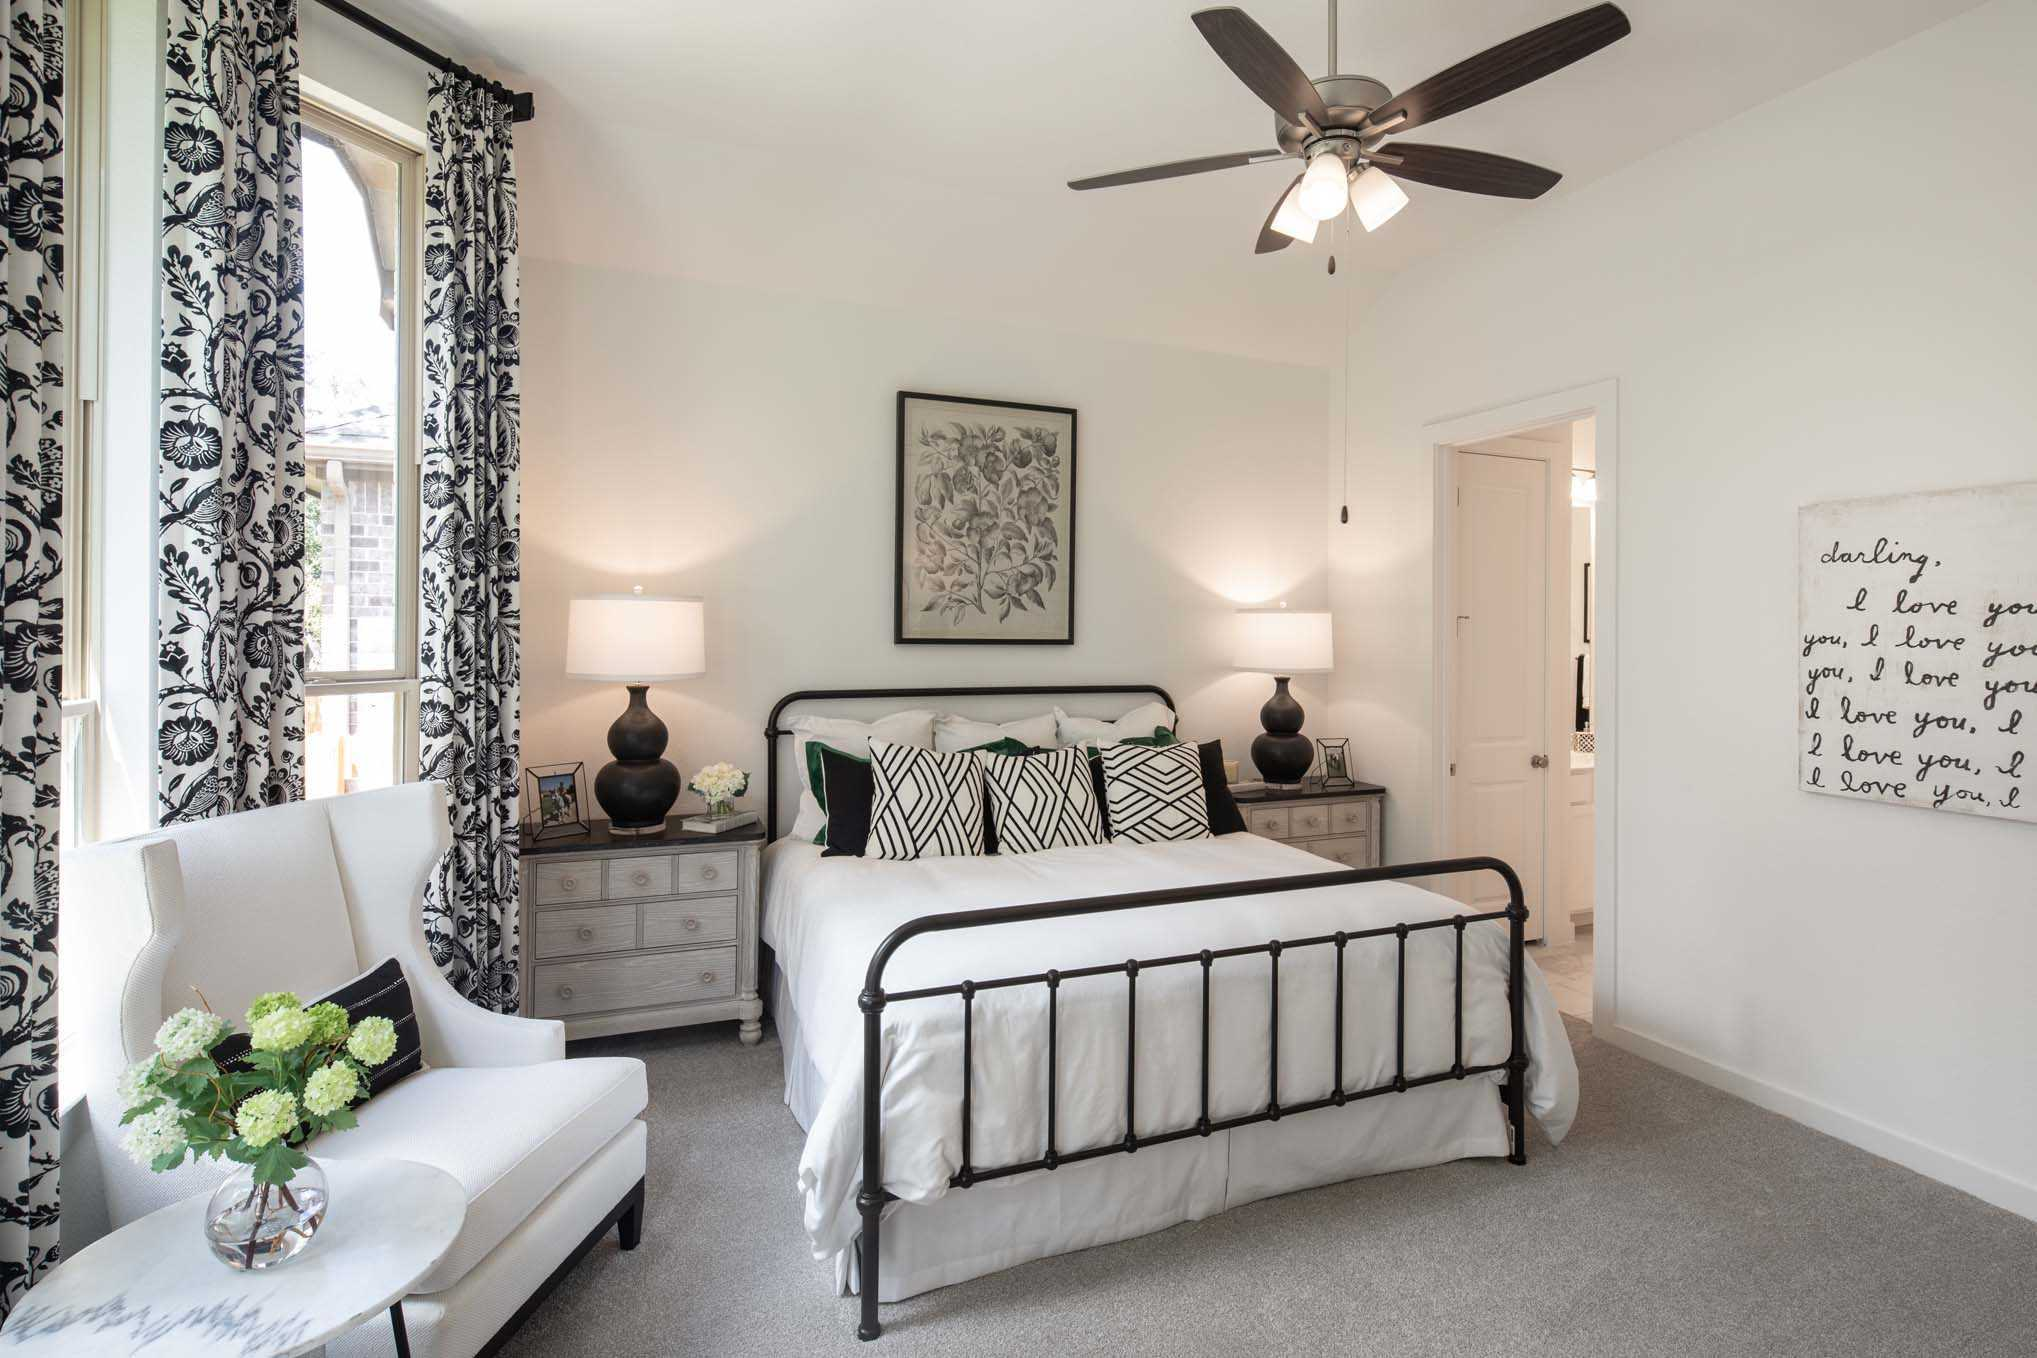 Bedroom featured in the Plan Fairhall By Highland Homes in Dallas, TX